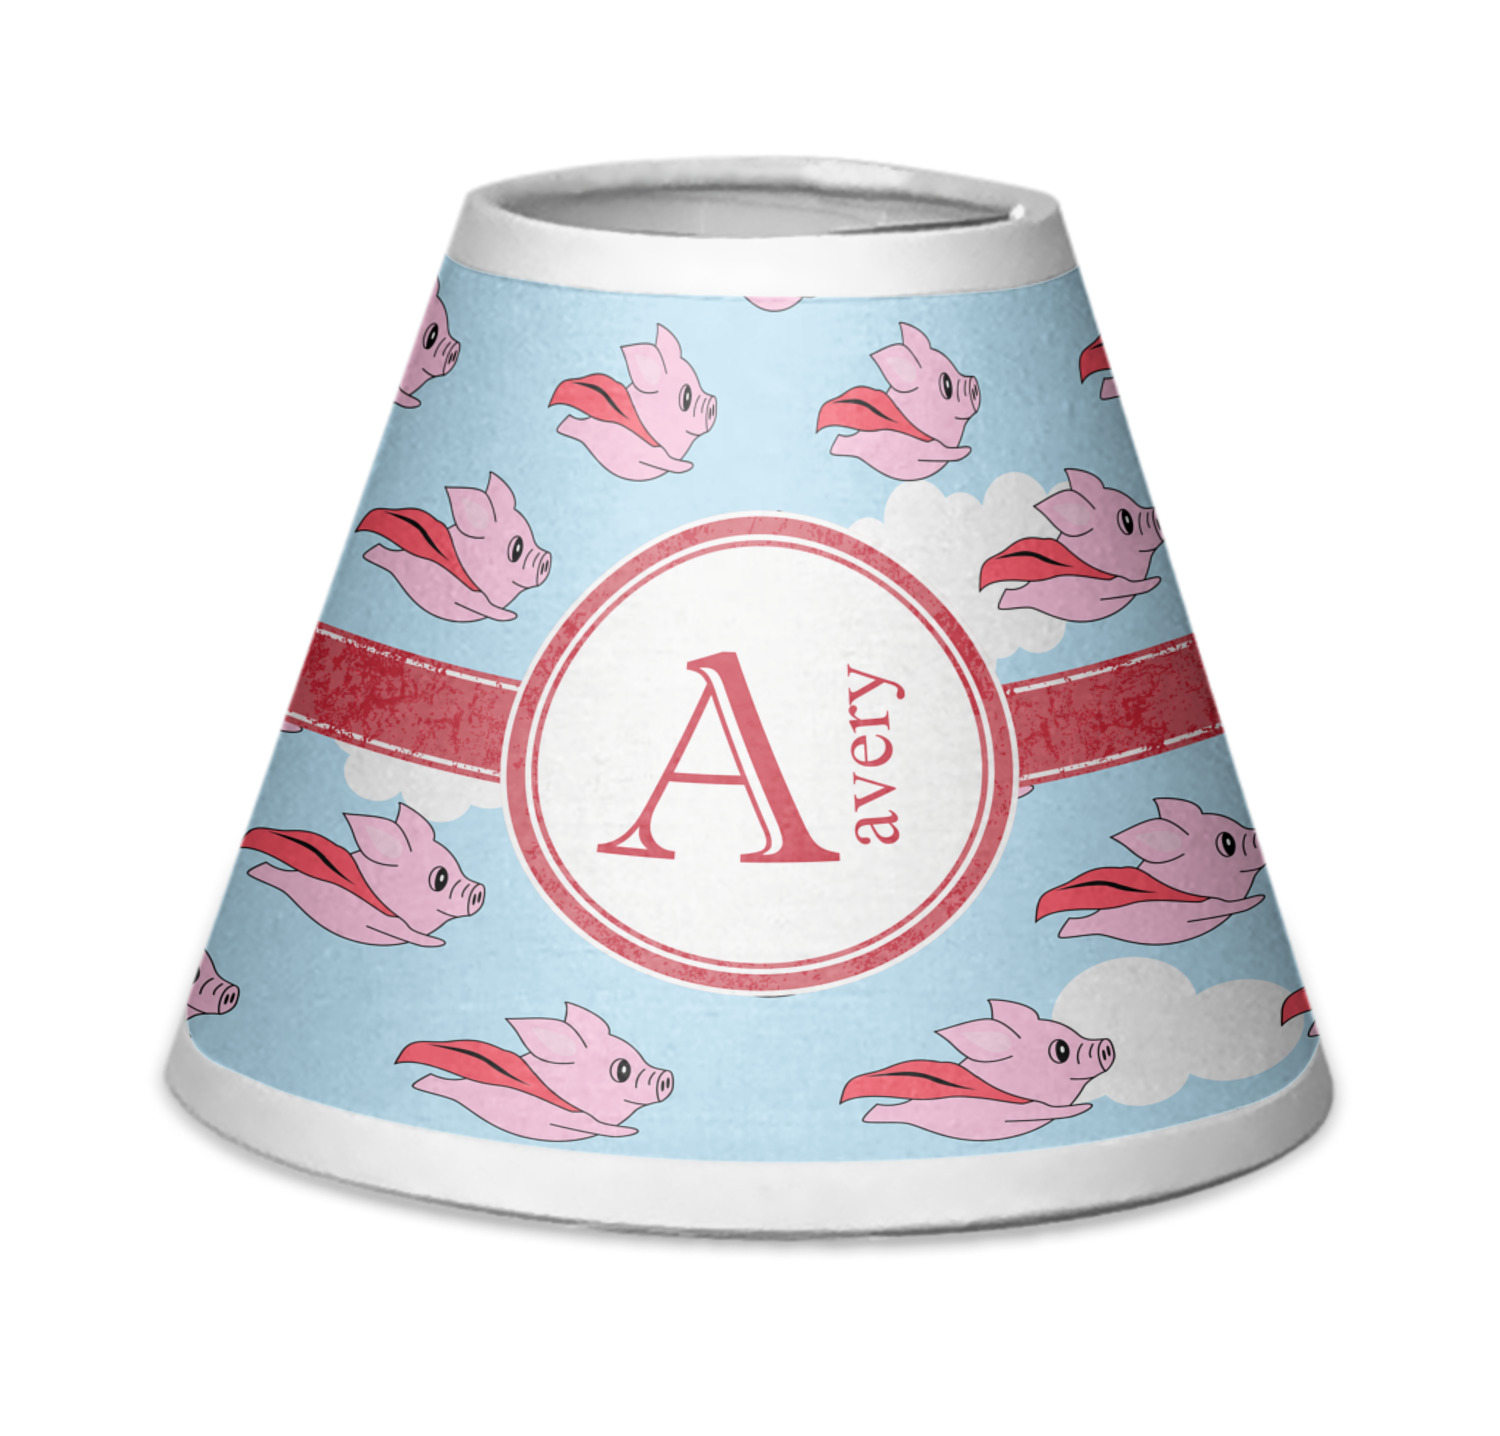 Flying pigs chandelier lamp shade personalized youcustomizeit flying pigs chandelier lamp shade personalized arubaitofo Images